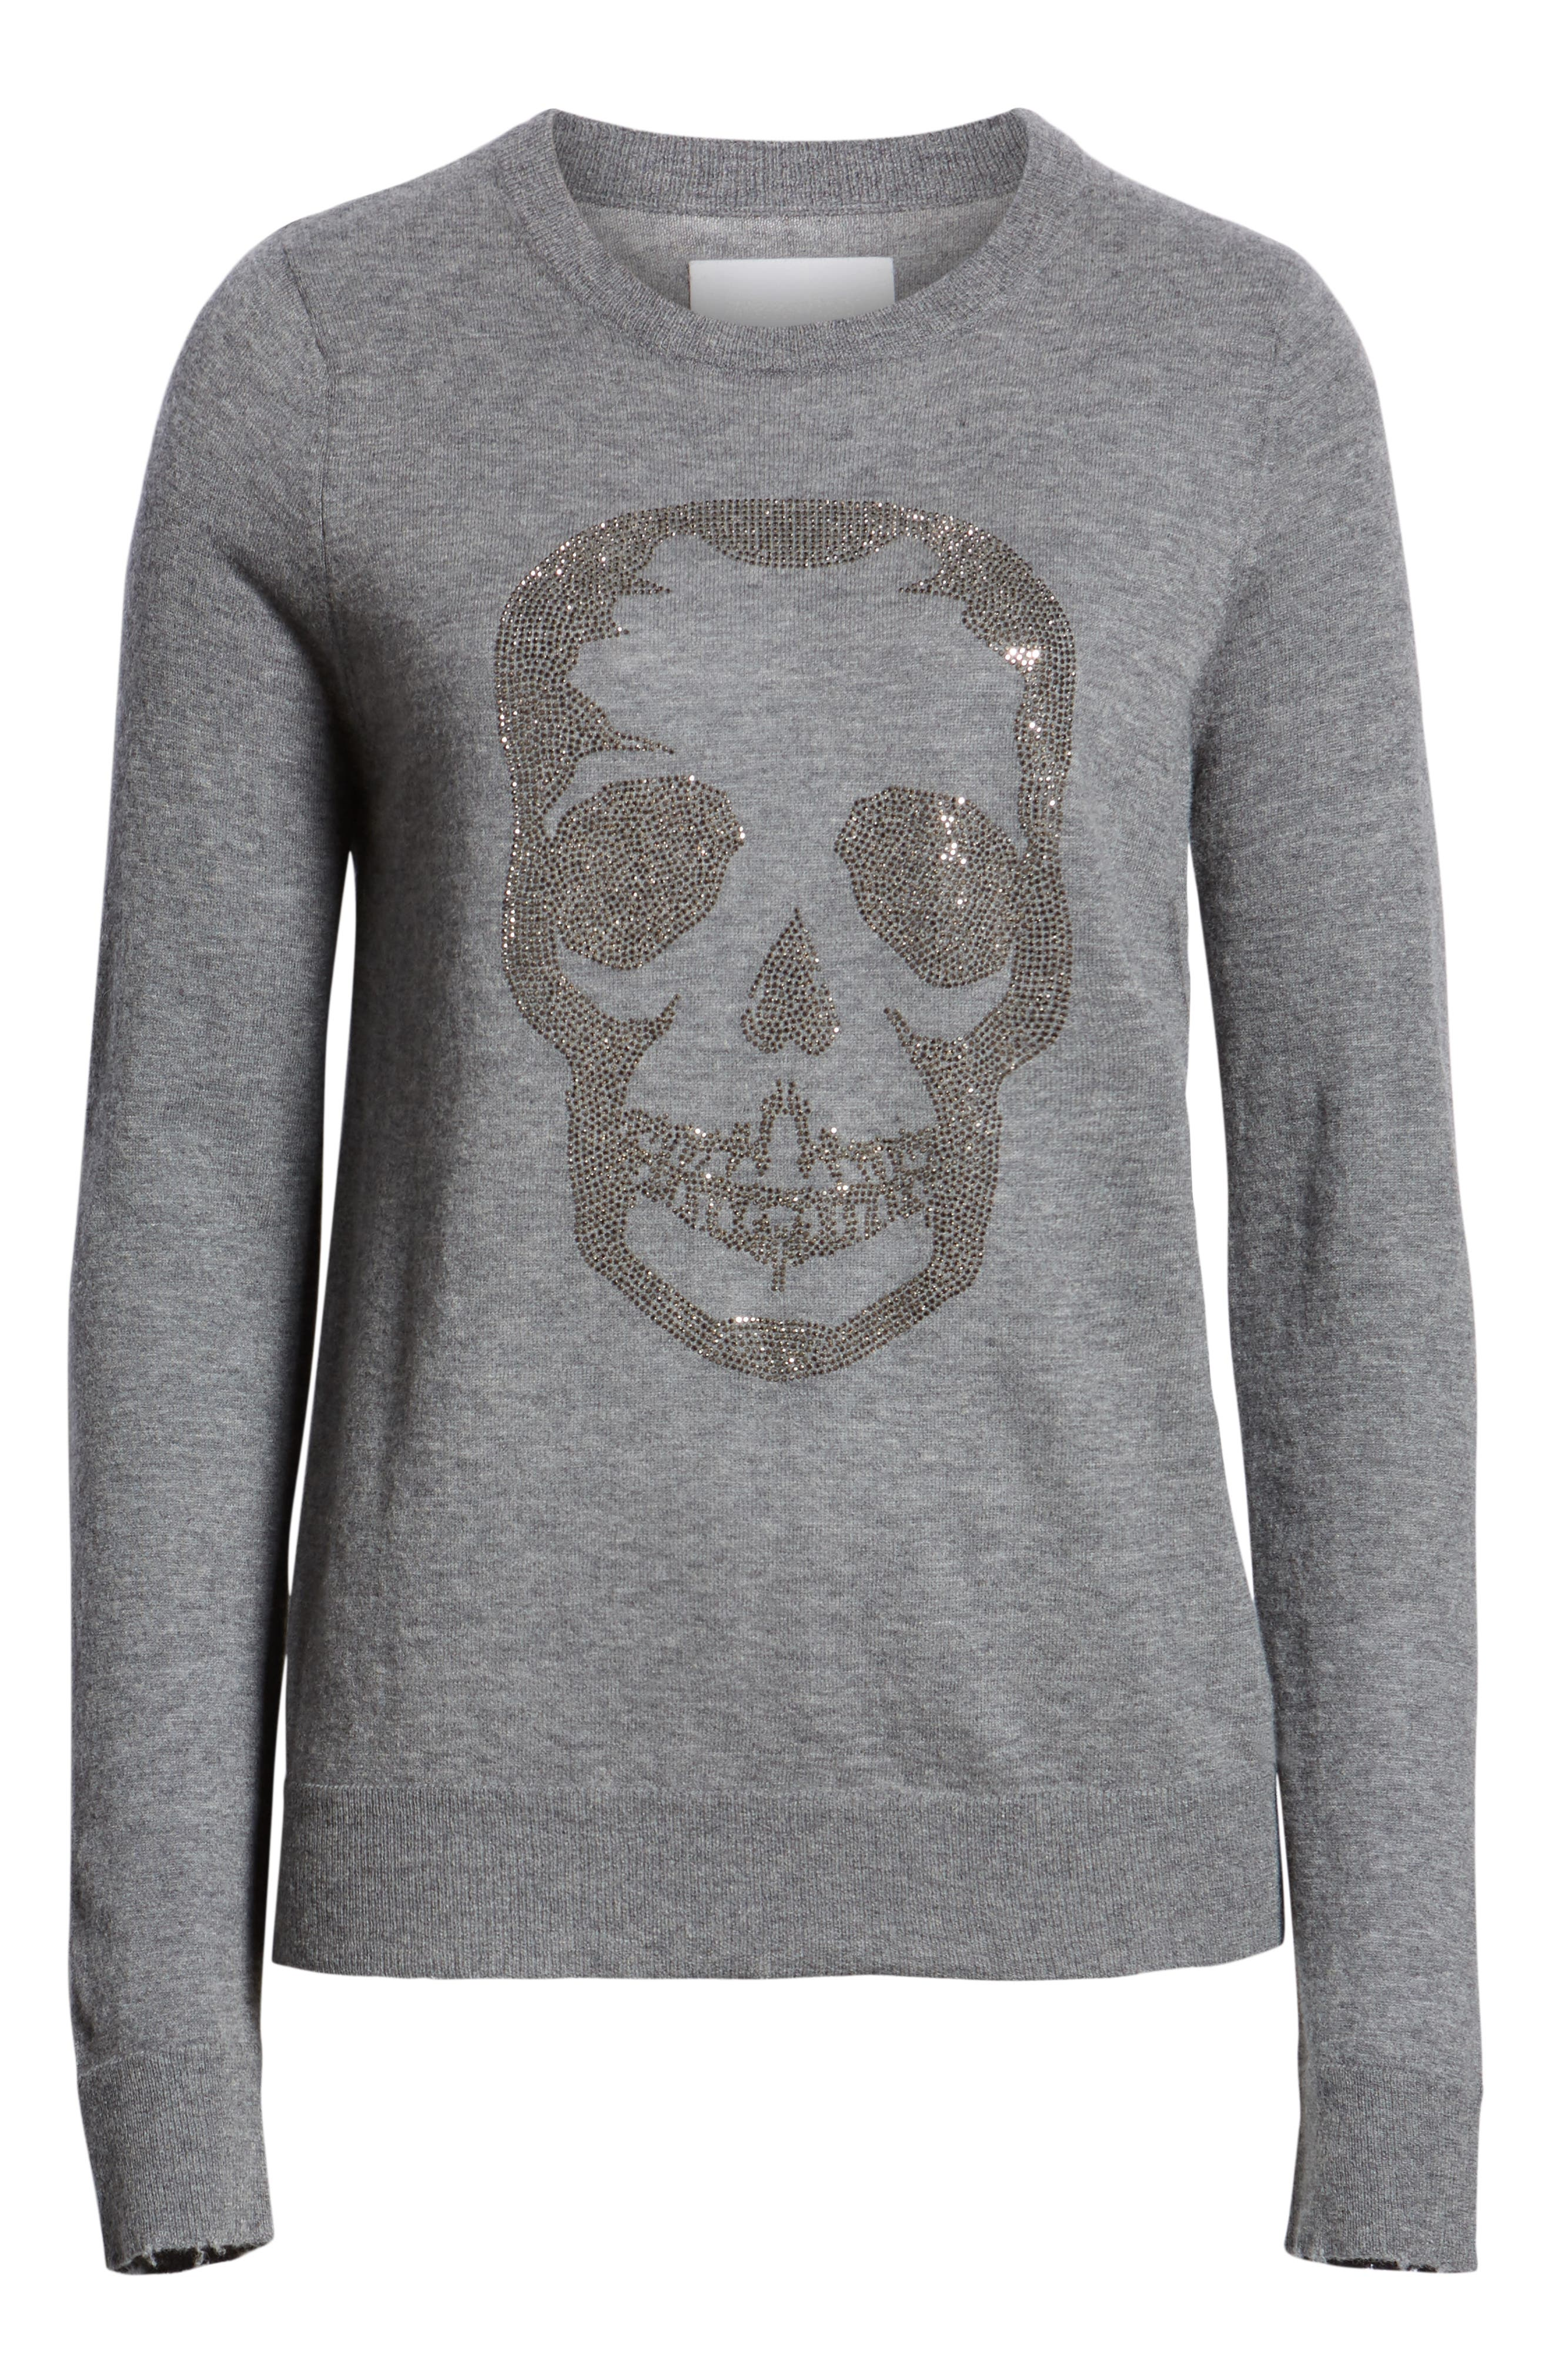 Miss Bis Skull Cashmere Tee,                             Alternate thumbnail 6, color,                             GRIS